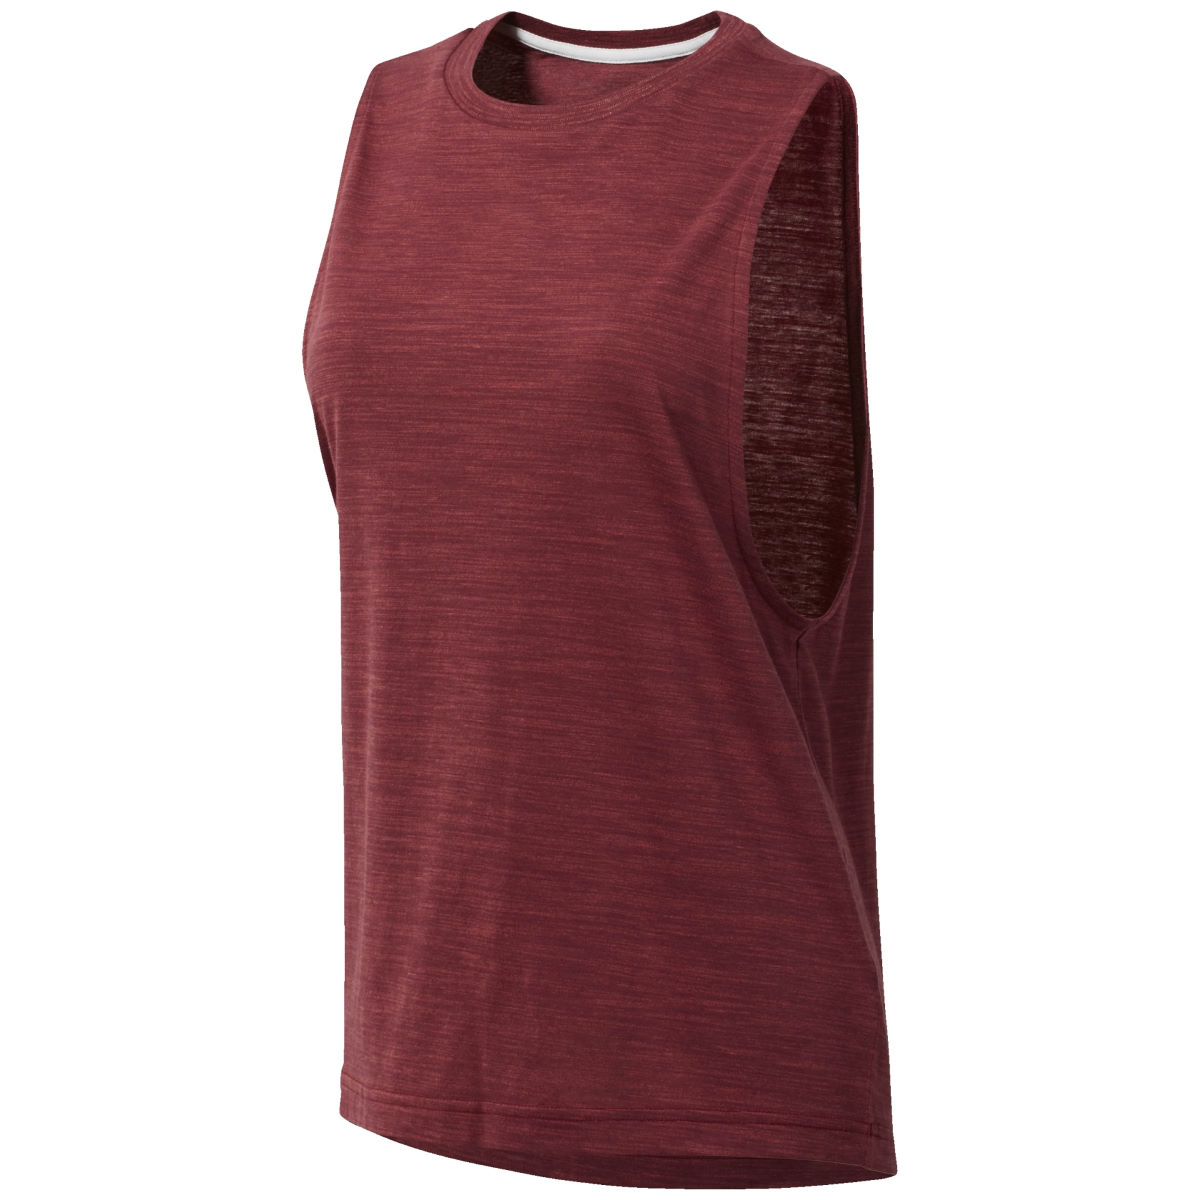 Reebok Women's Training Essentials Marble Muscle Tank - XL